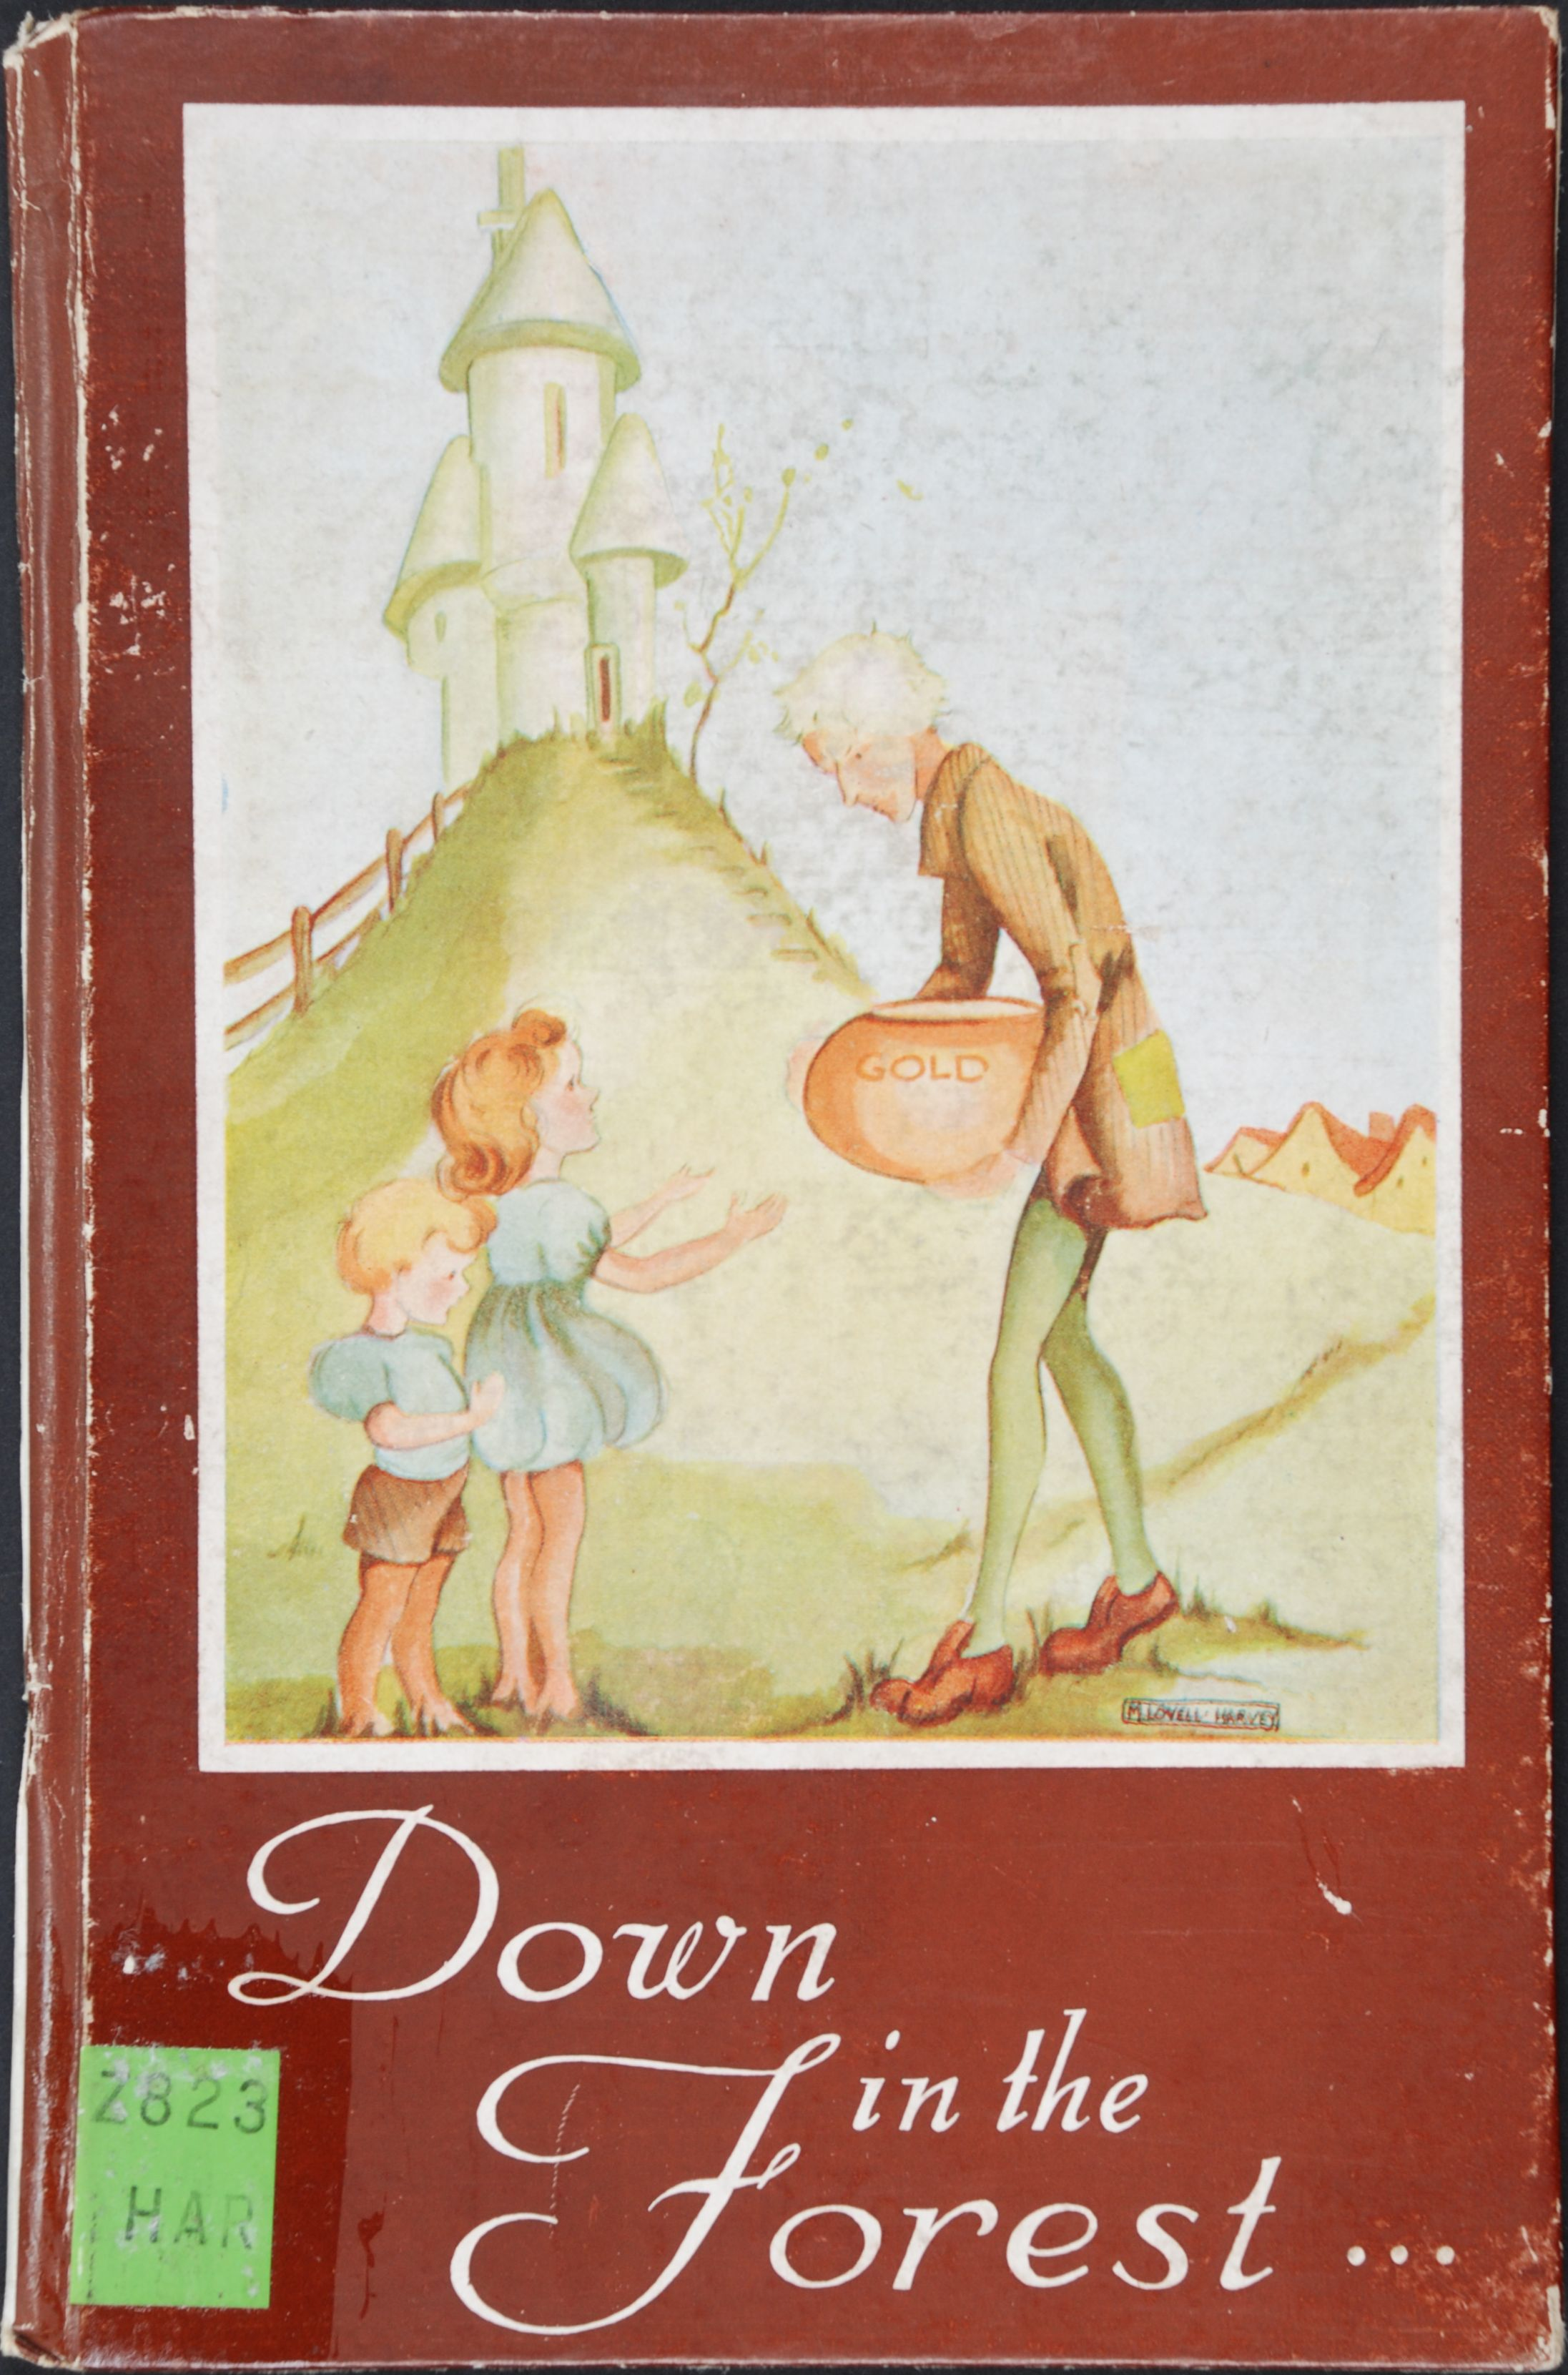 Nancy Irene Harvey. Down in the forest, the adventures of Nobby, and his friend, the Doctor, with the forest folk. Auckland, N.Z.: Oswald-Sealy (New Zealand) Ltd., [1944].